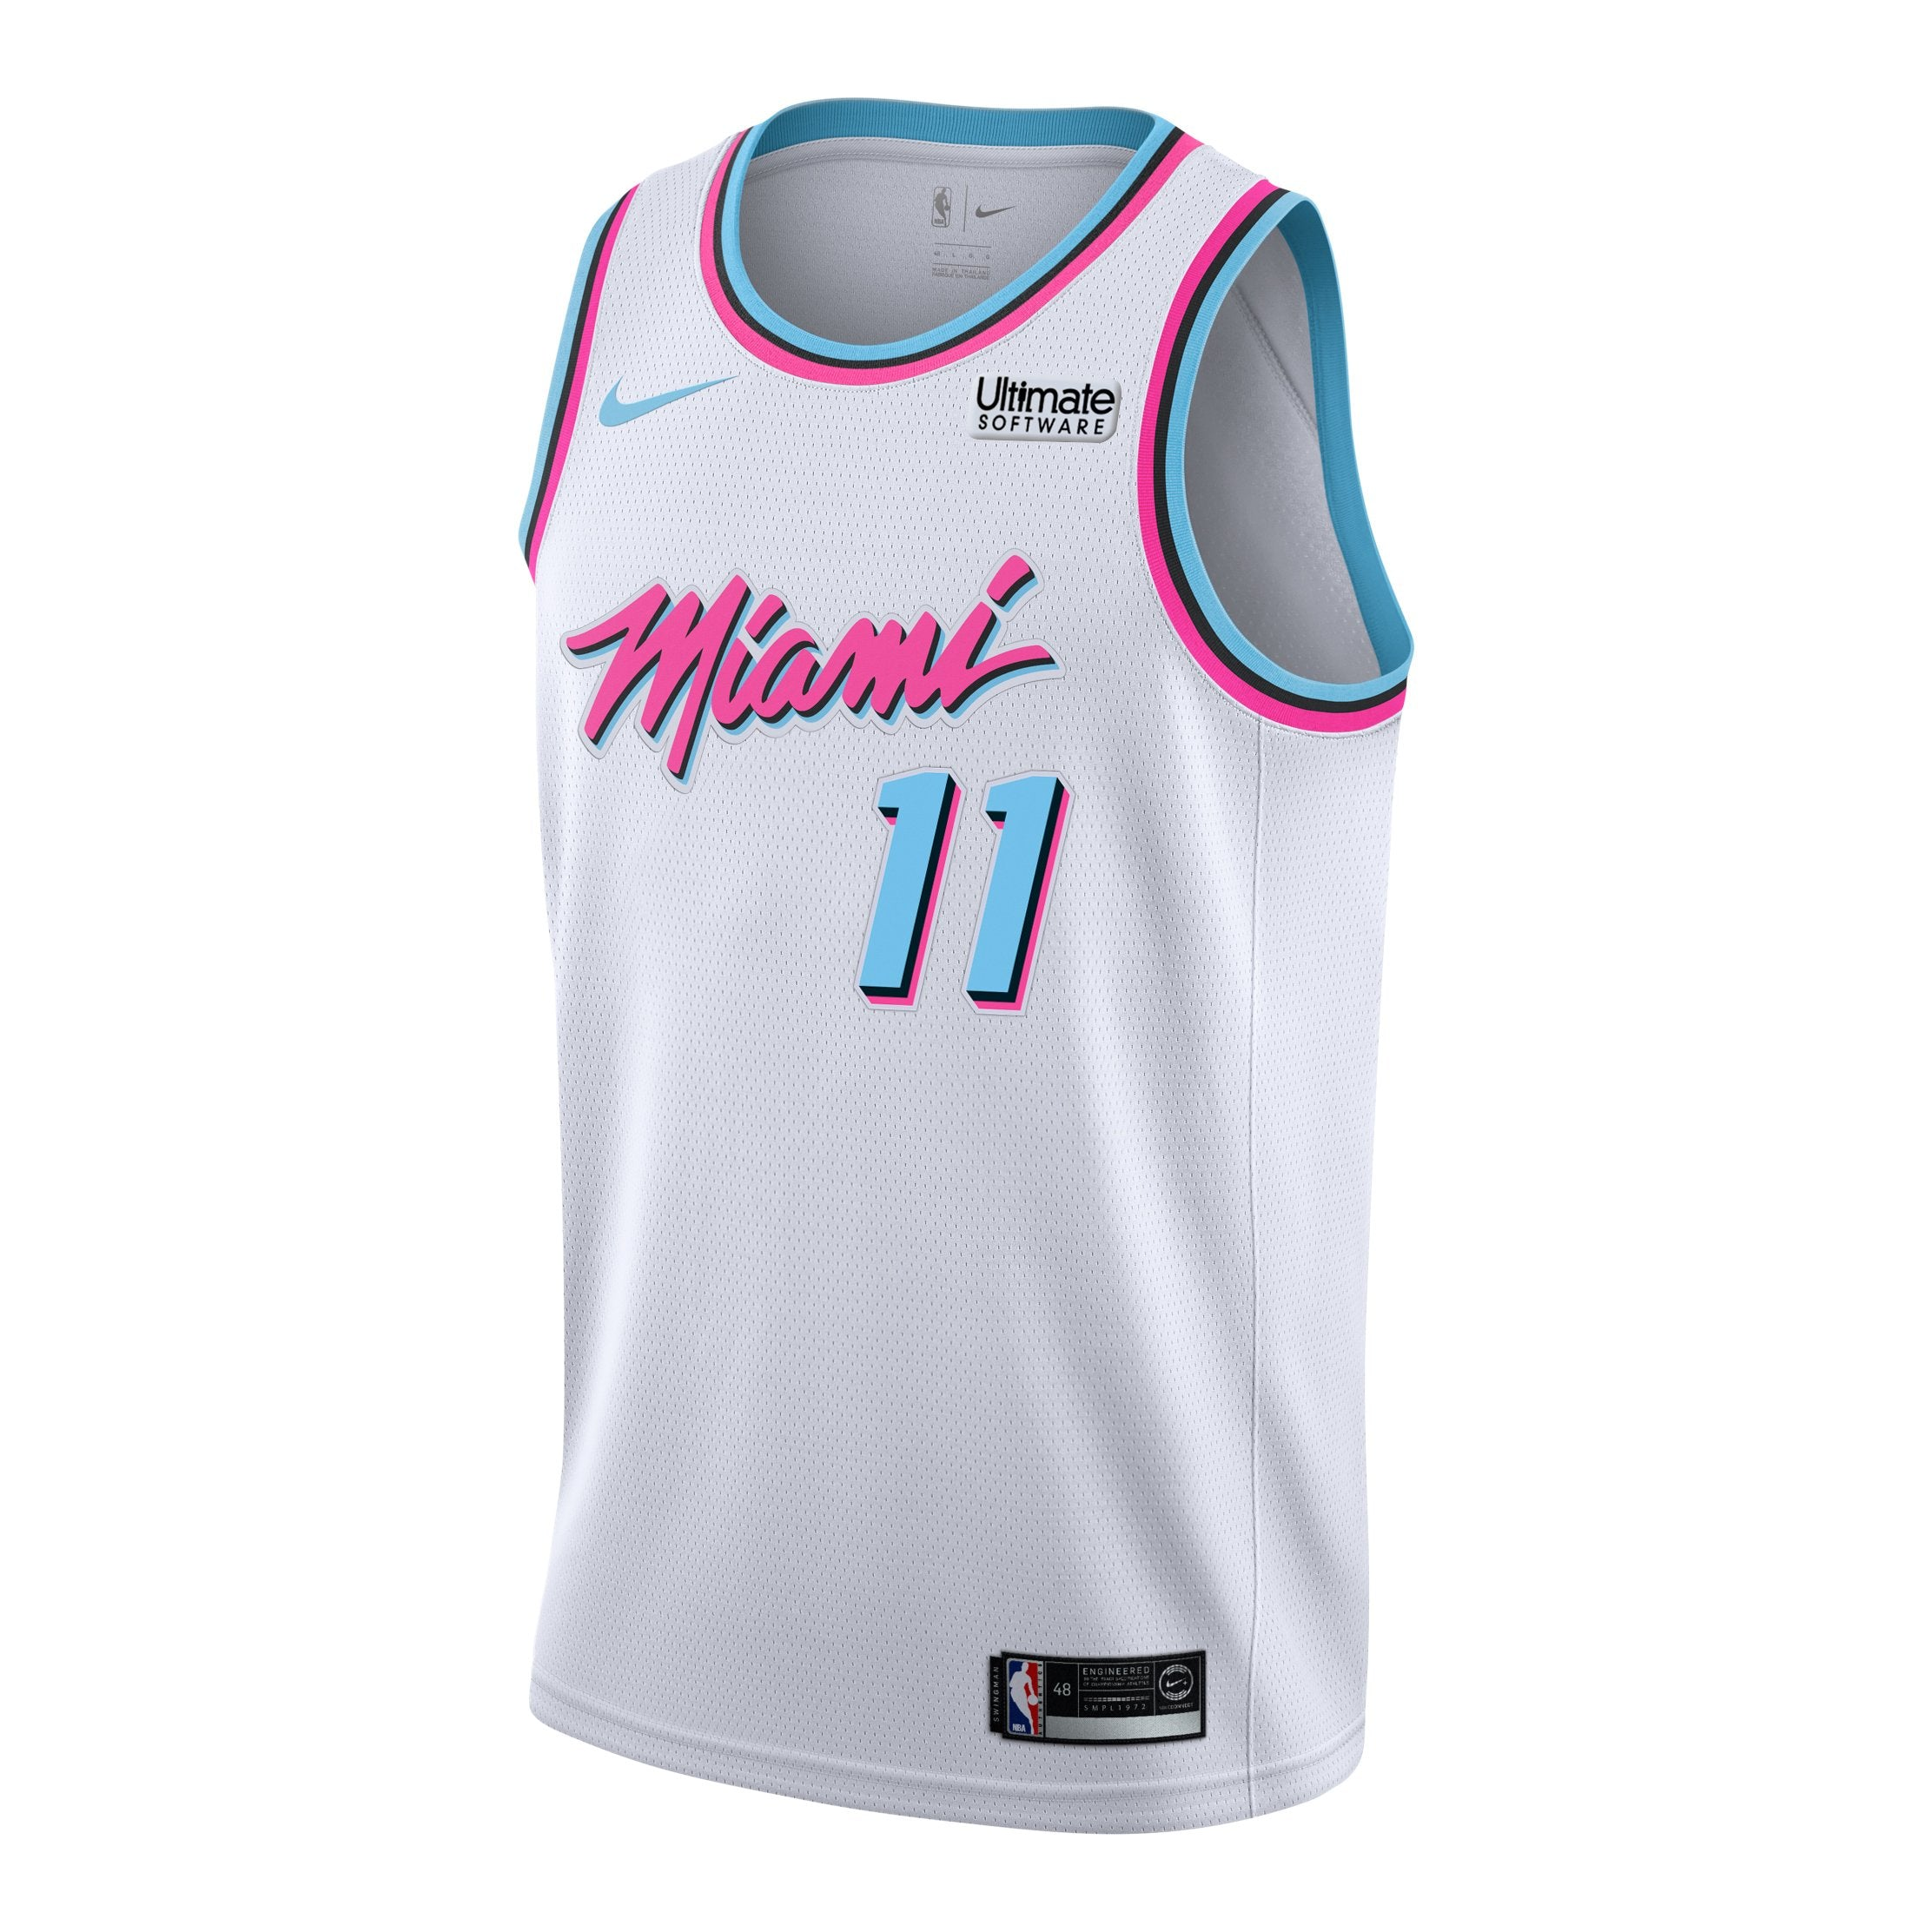 d7facb2fe Dion Waiters Nike Miami HEAT Vice Uniform City Edition Swingman Jersey -  featured image